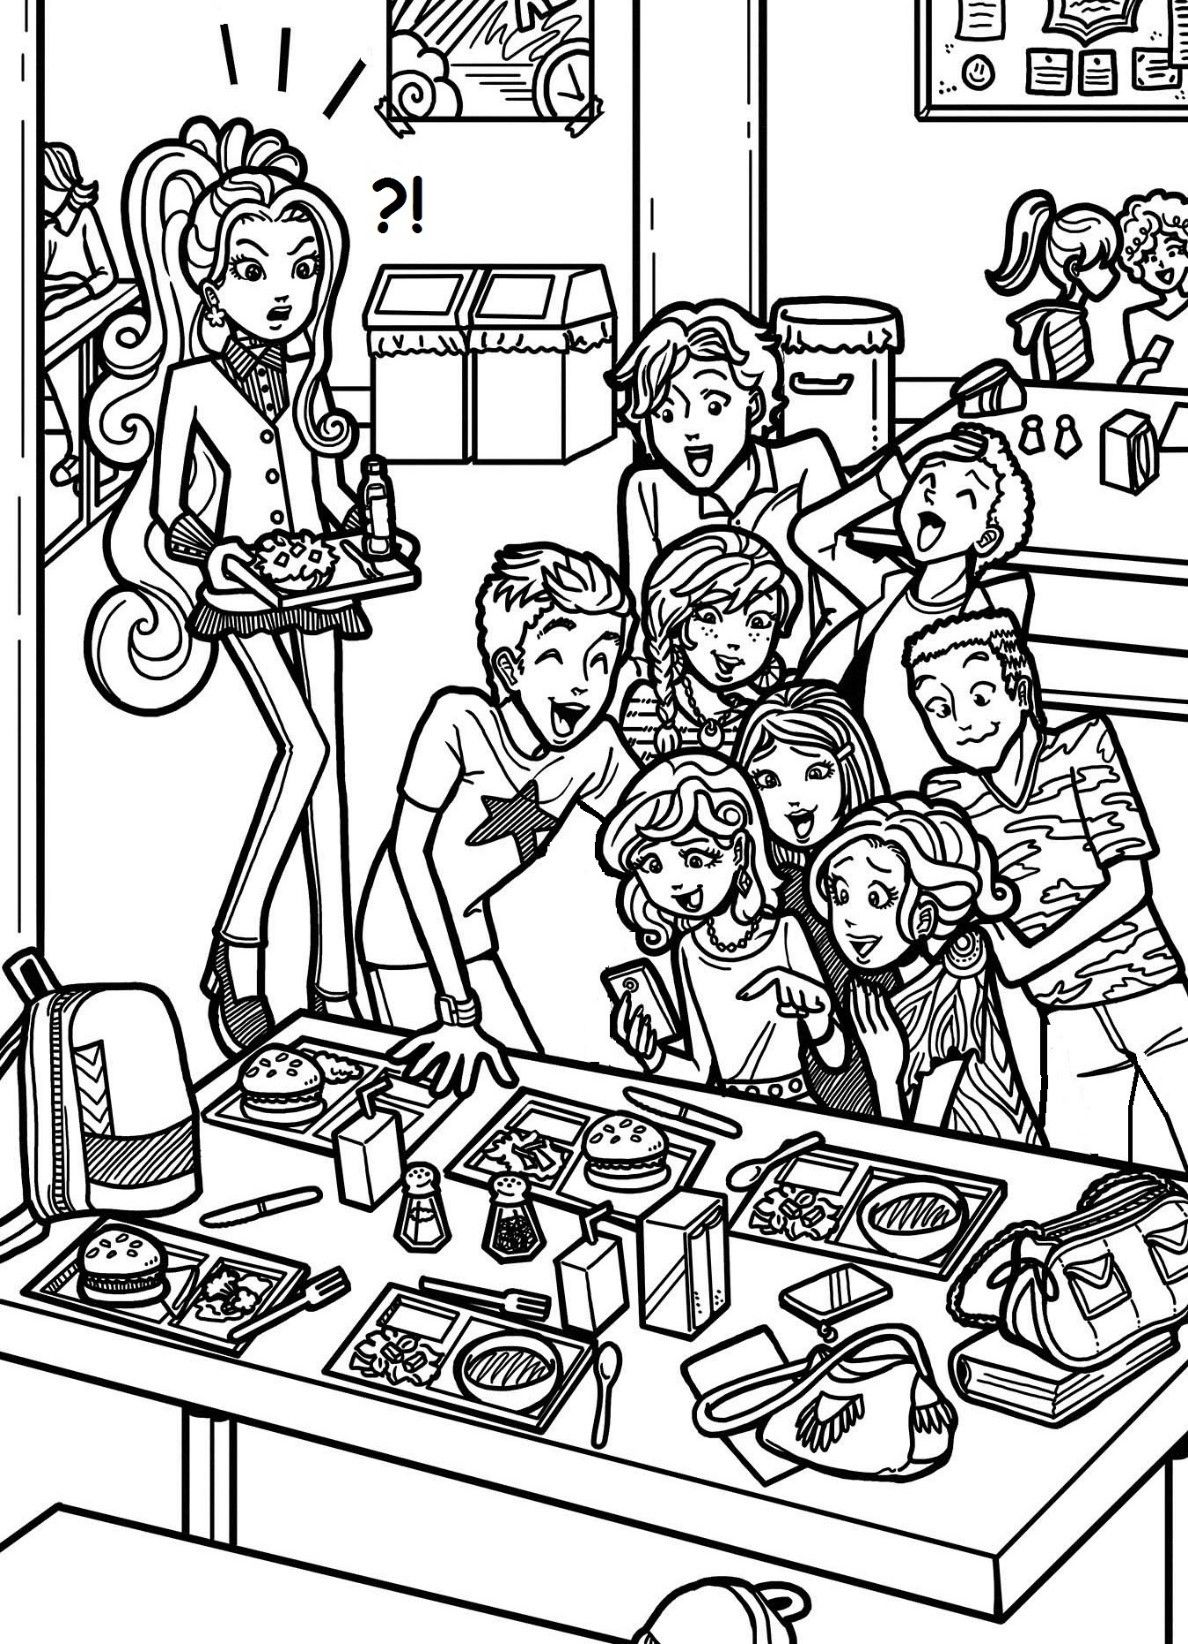 Coloring pages for dork diaries - Image Result For Mackenzie Hollister Dork Diarieshollistercartoons